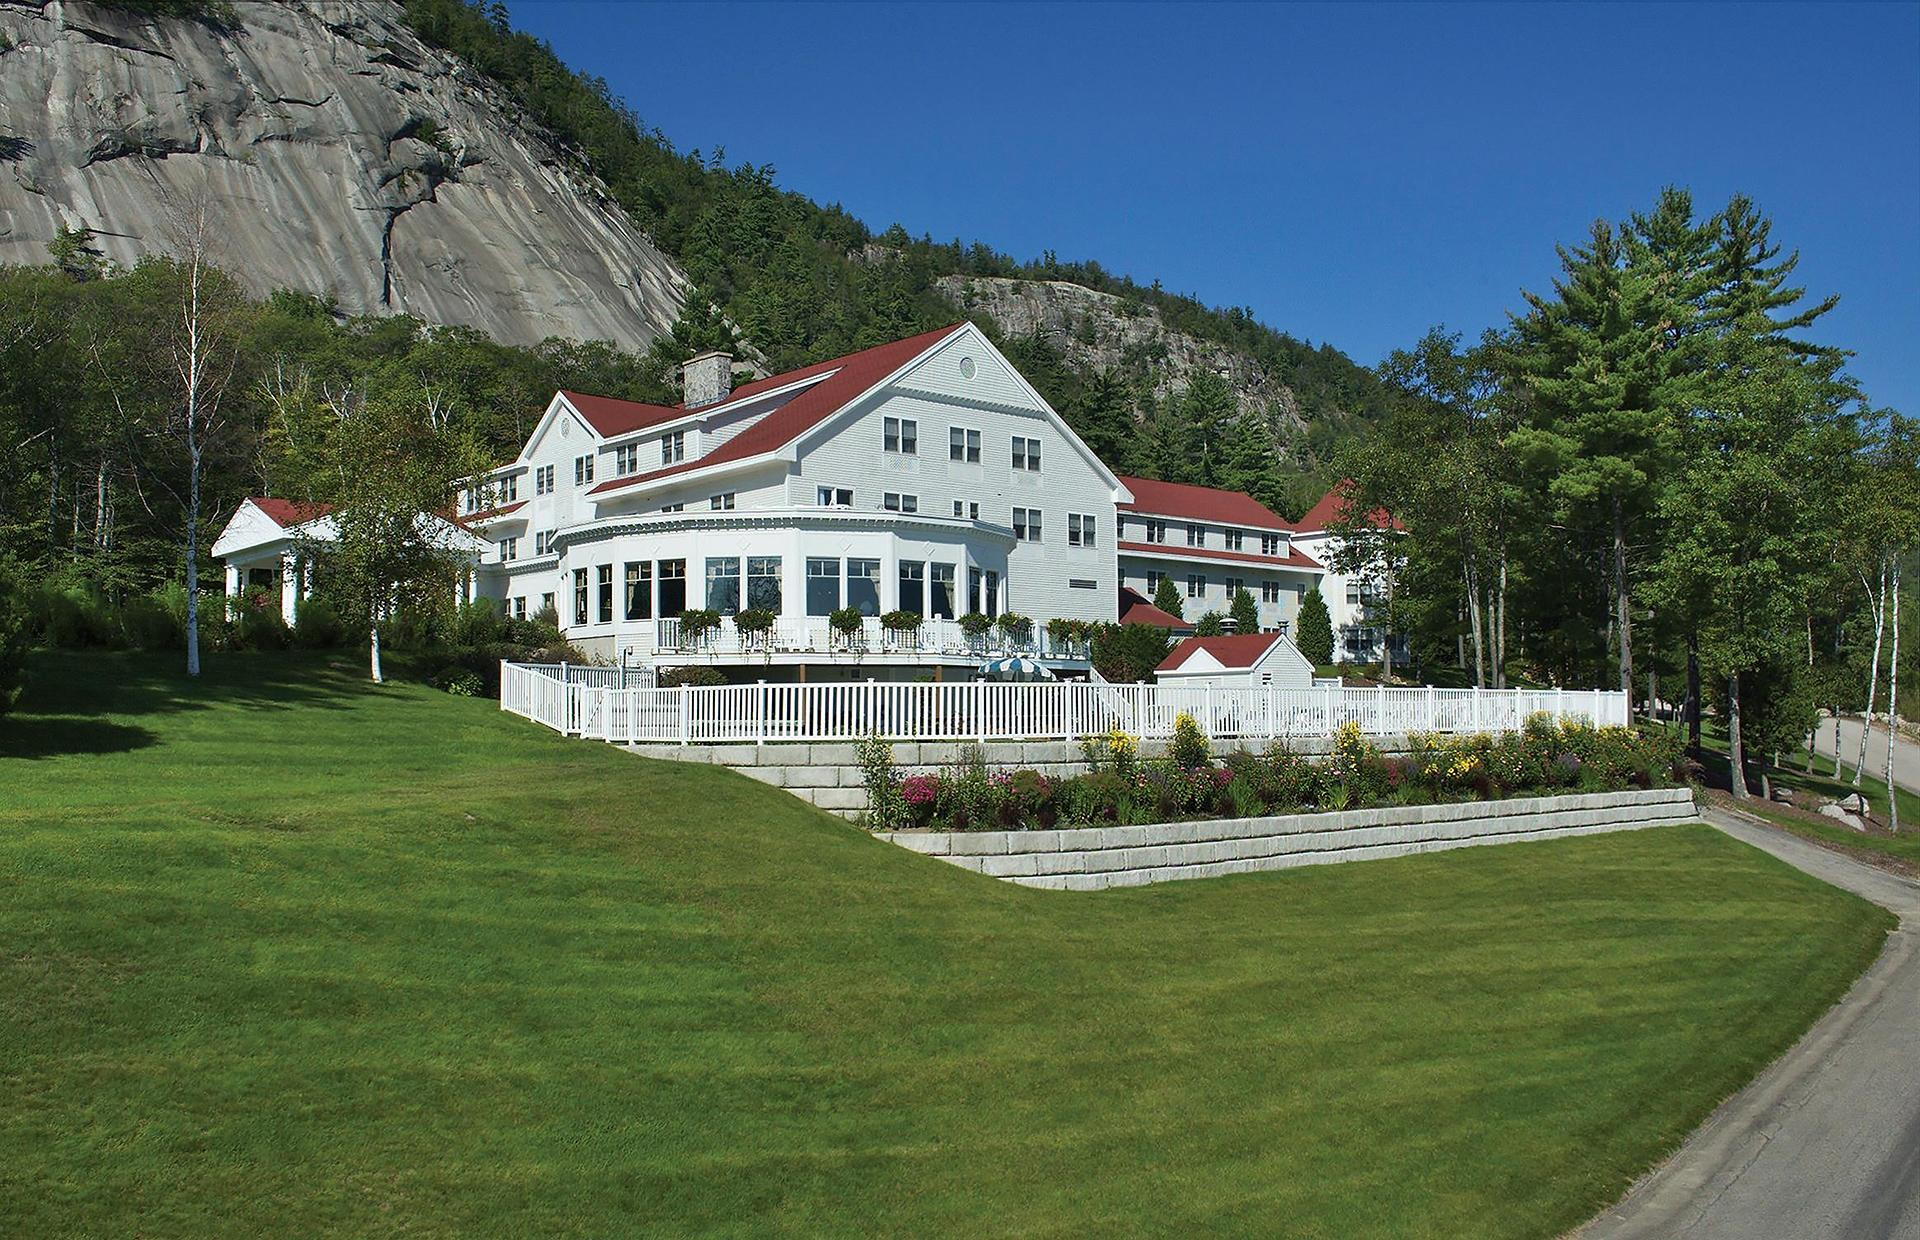 lodging in north conway, nh | unique vacations + getaways | white